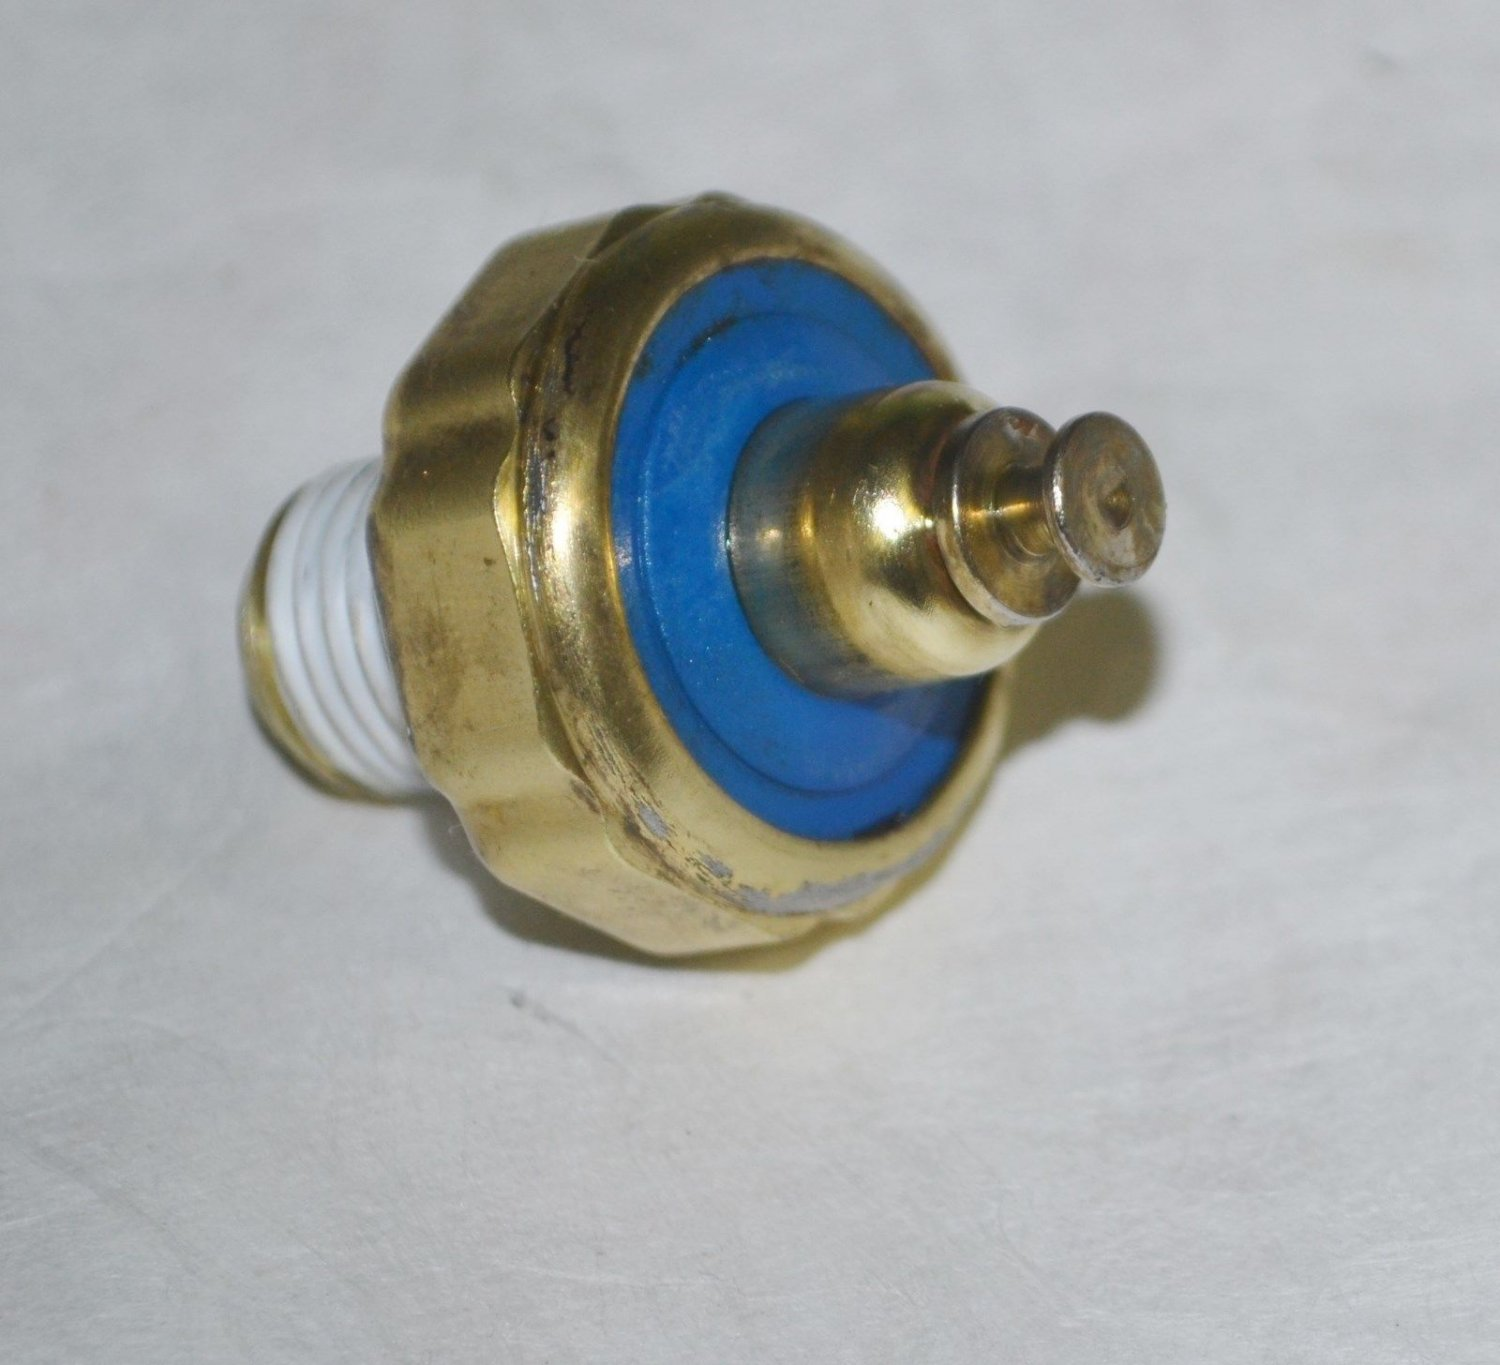 OIL SWITCH FORD 1954 1955 1956 1957 1958-66 LINCOLN 1956-1963 MERCURY 1960-1969